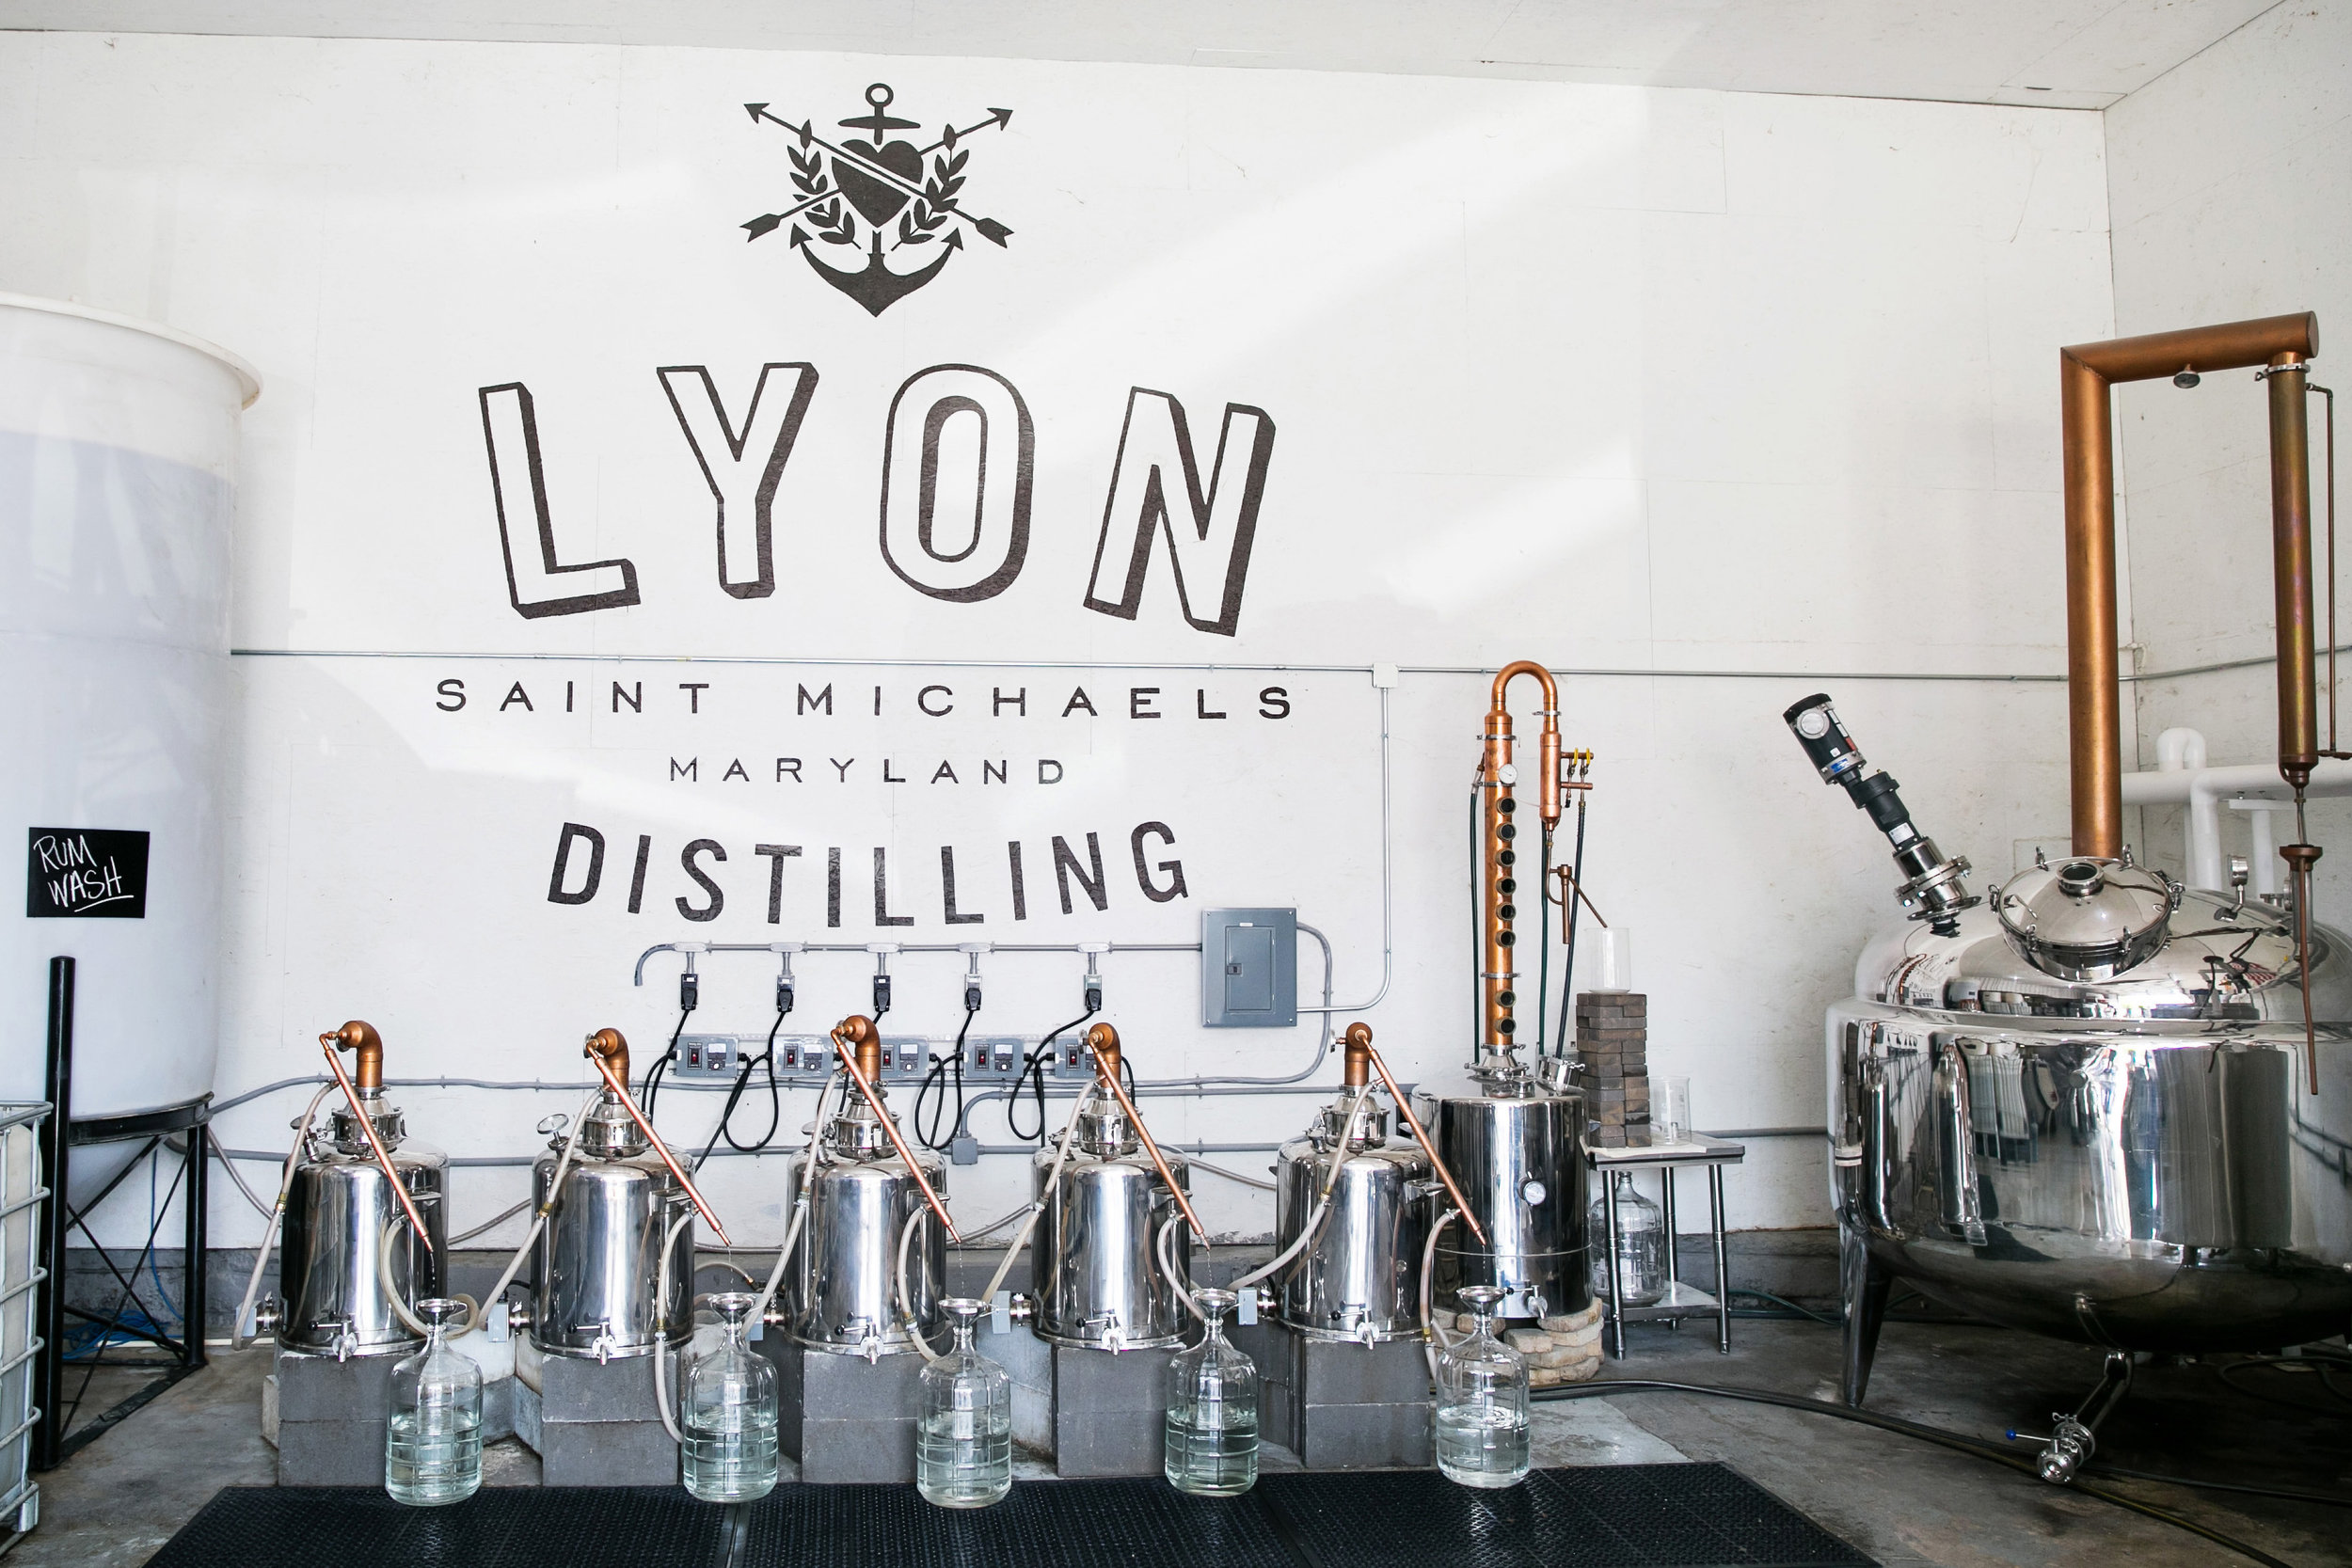 lyon-distilling-pot-stills.jpg